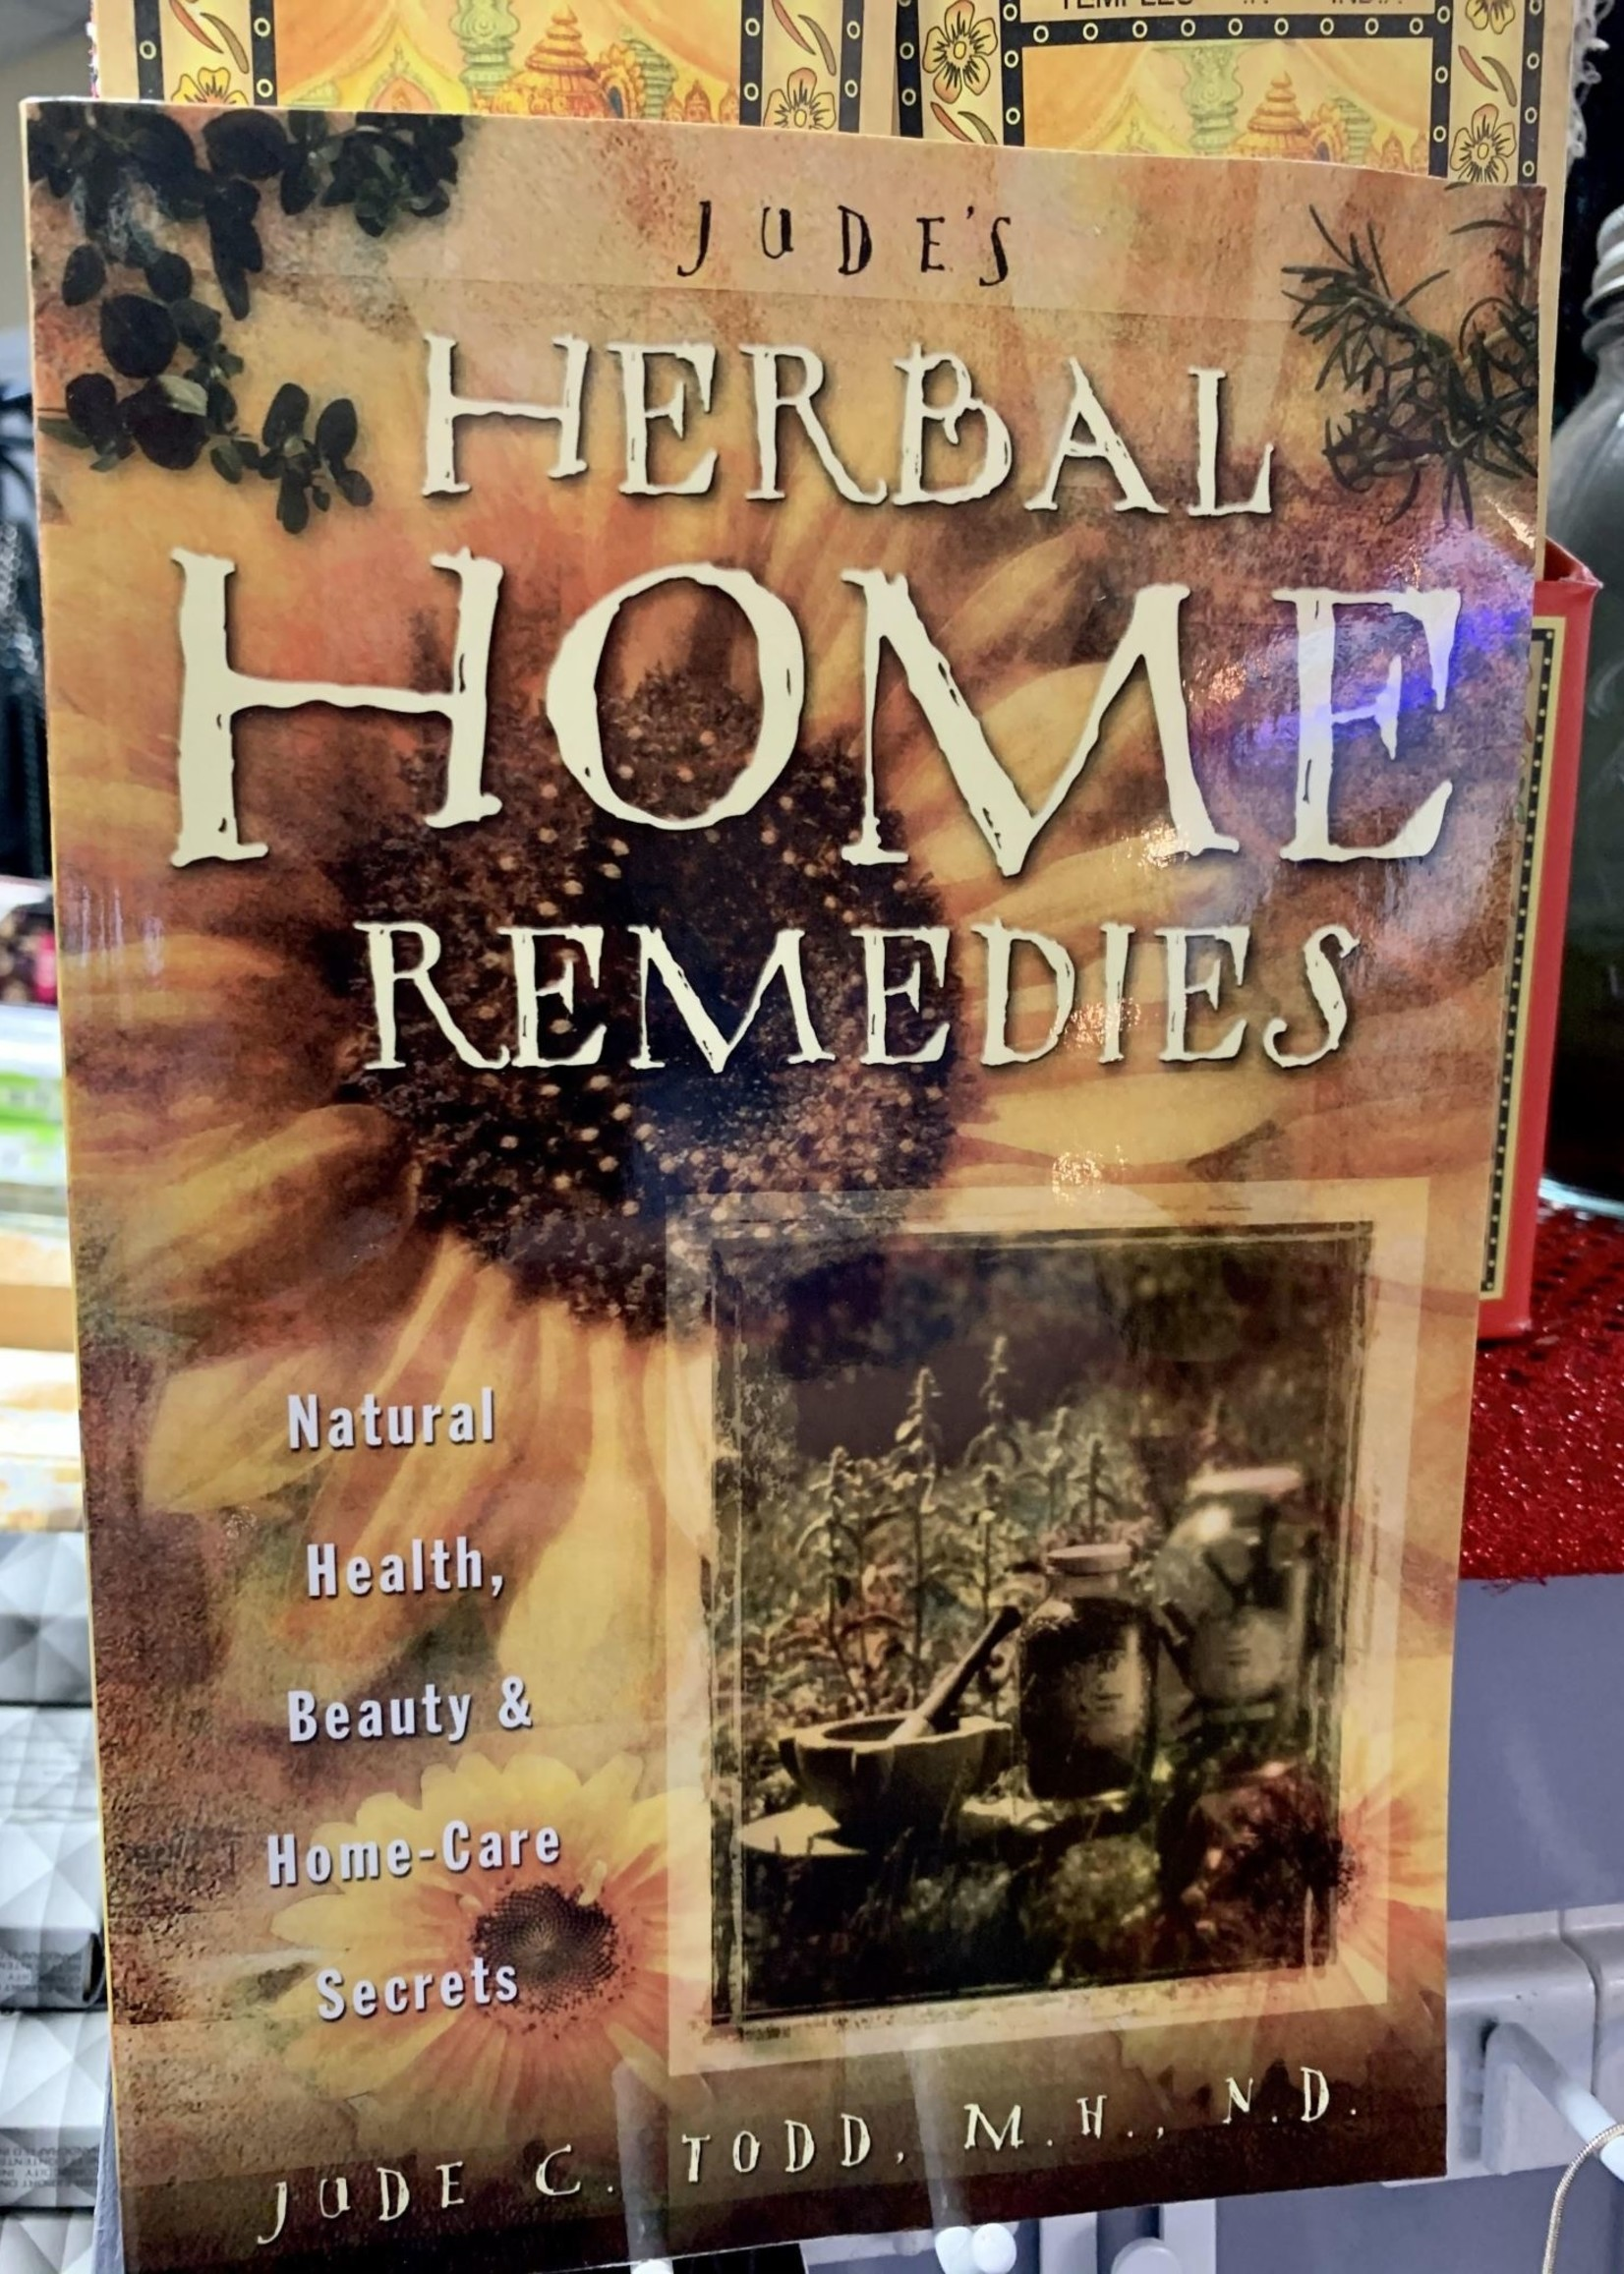 Jude's Herbal Home Remedies -  BY JUDE TODD